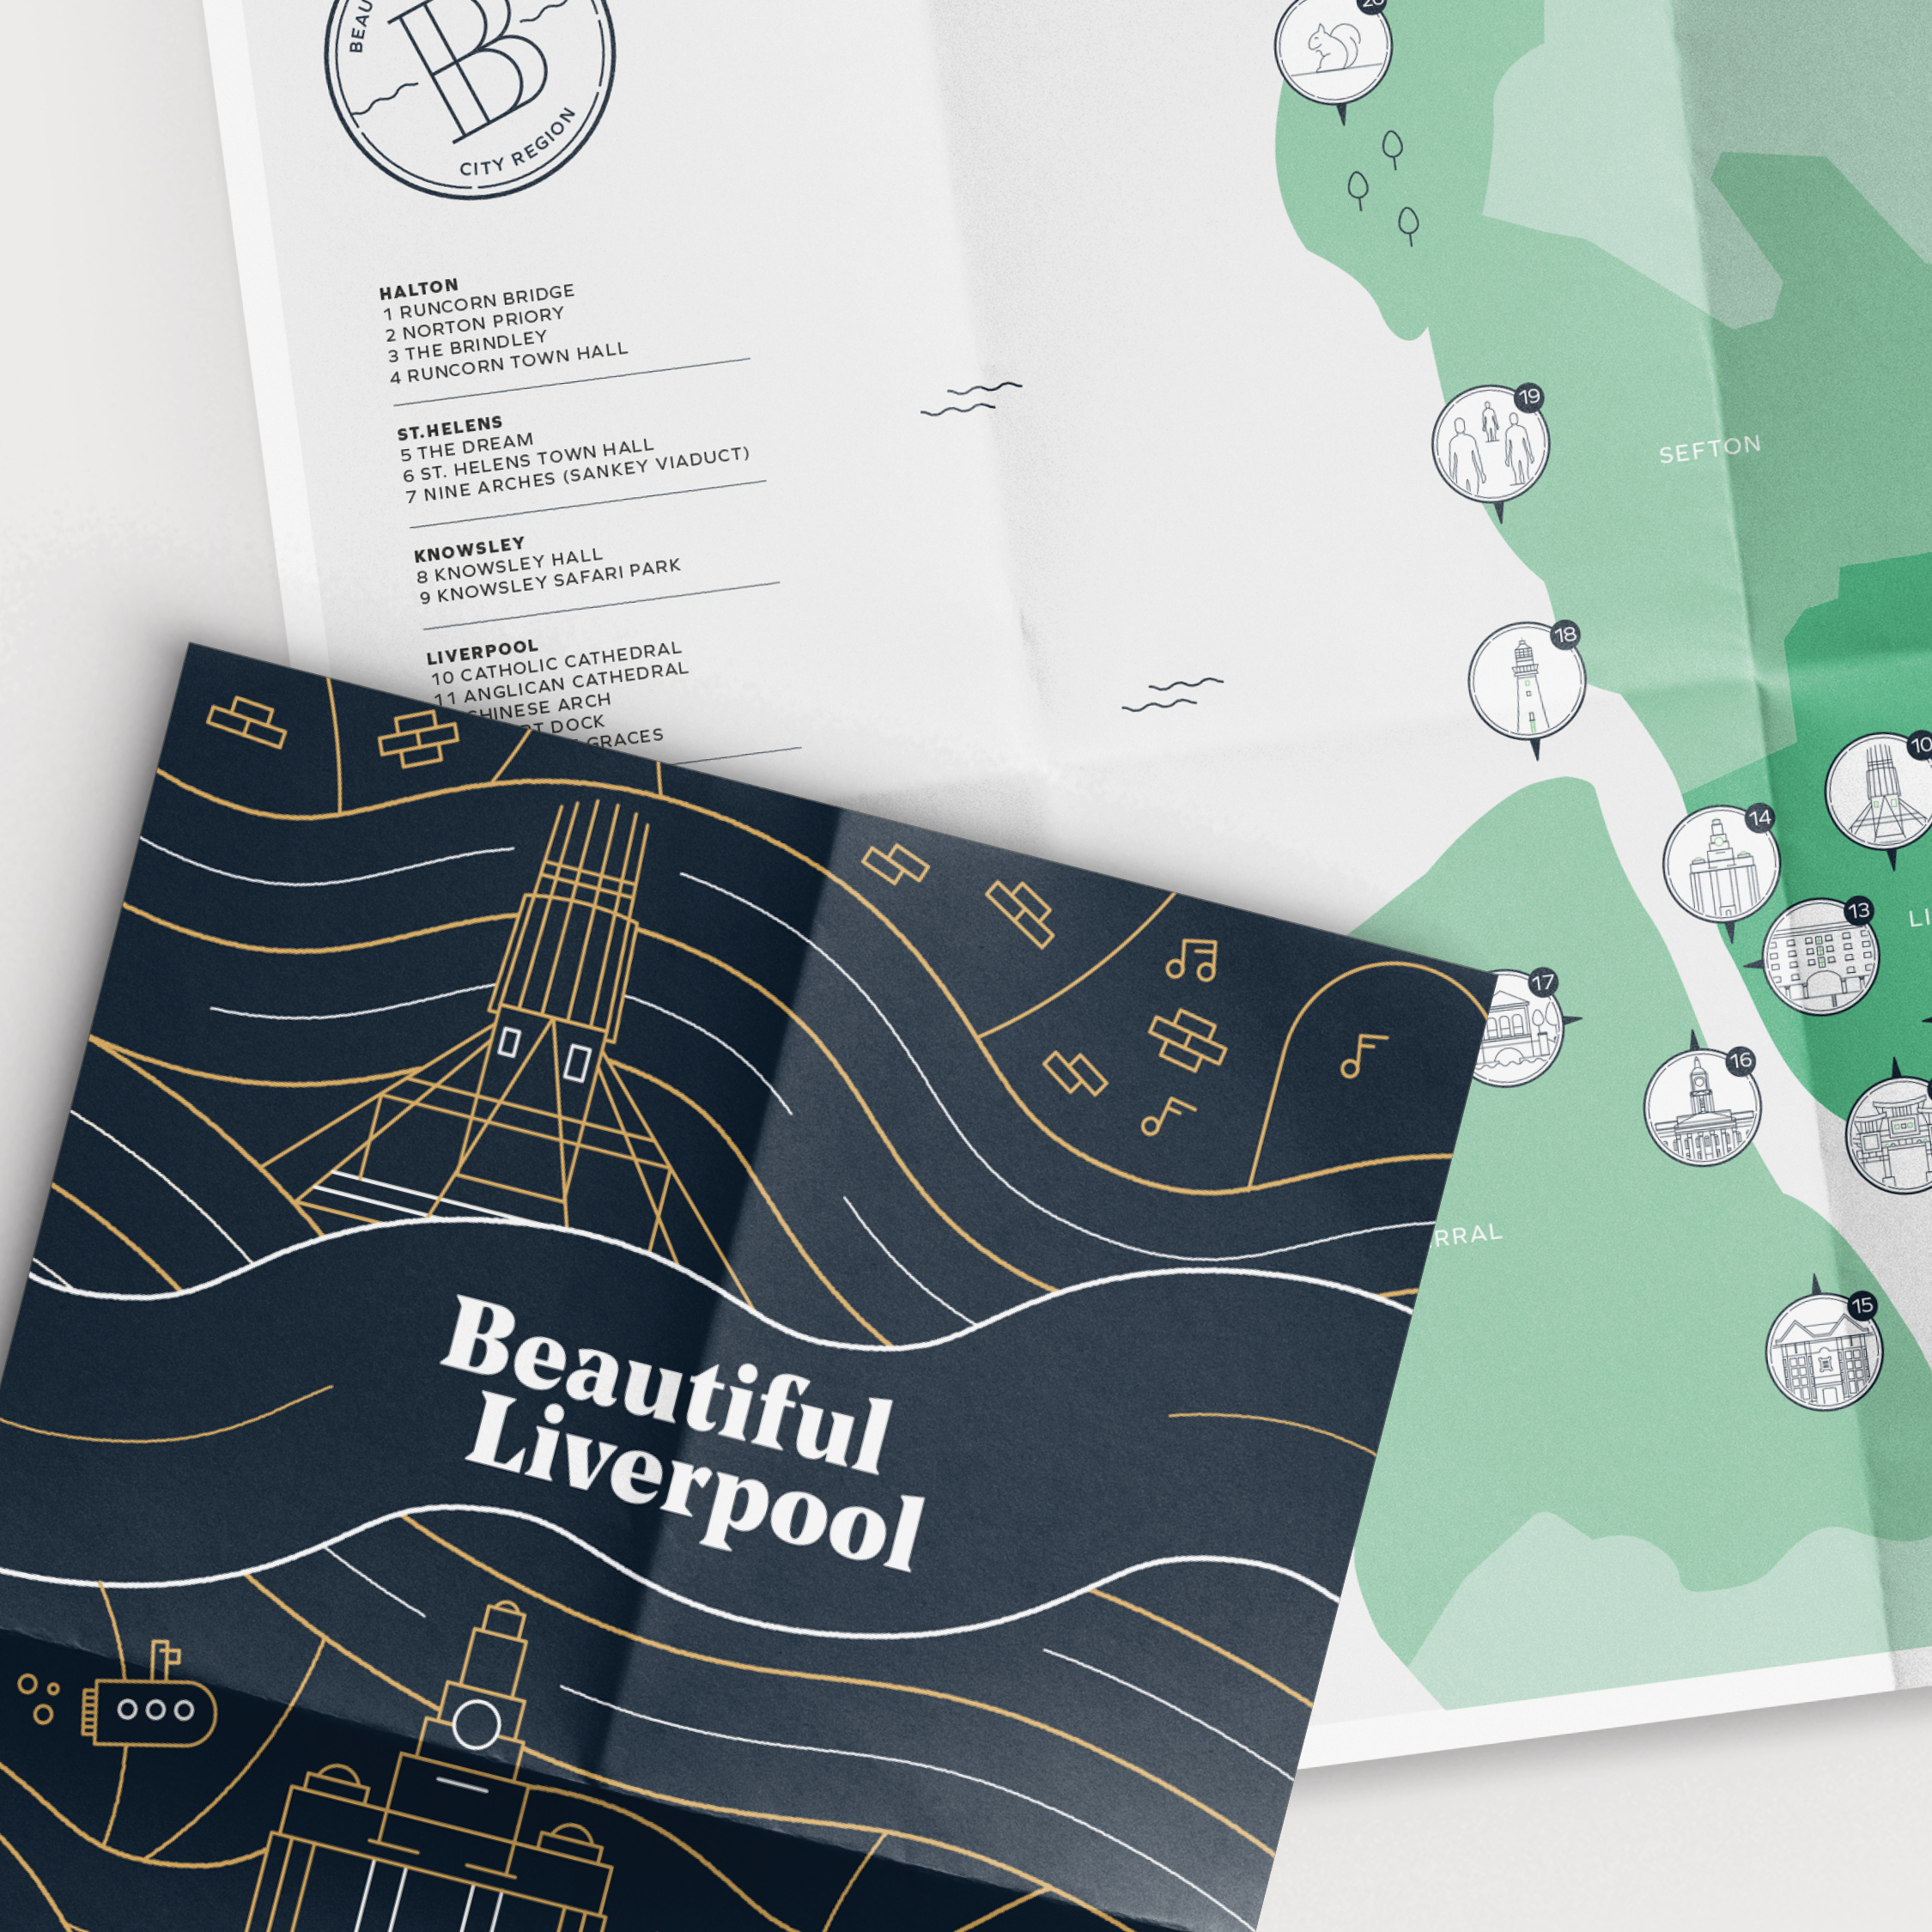 Beautiful Liverpool map design